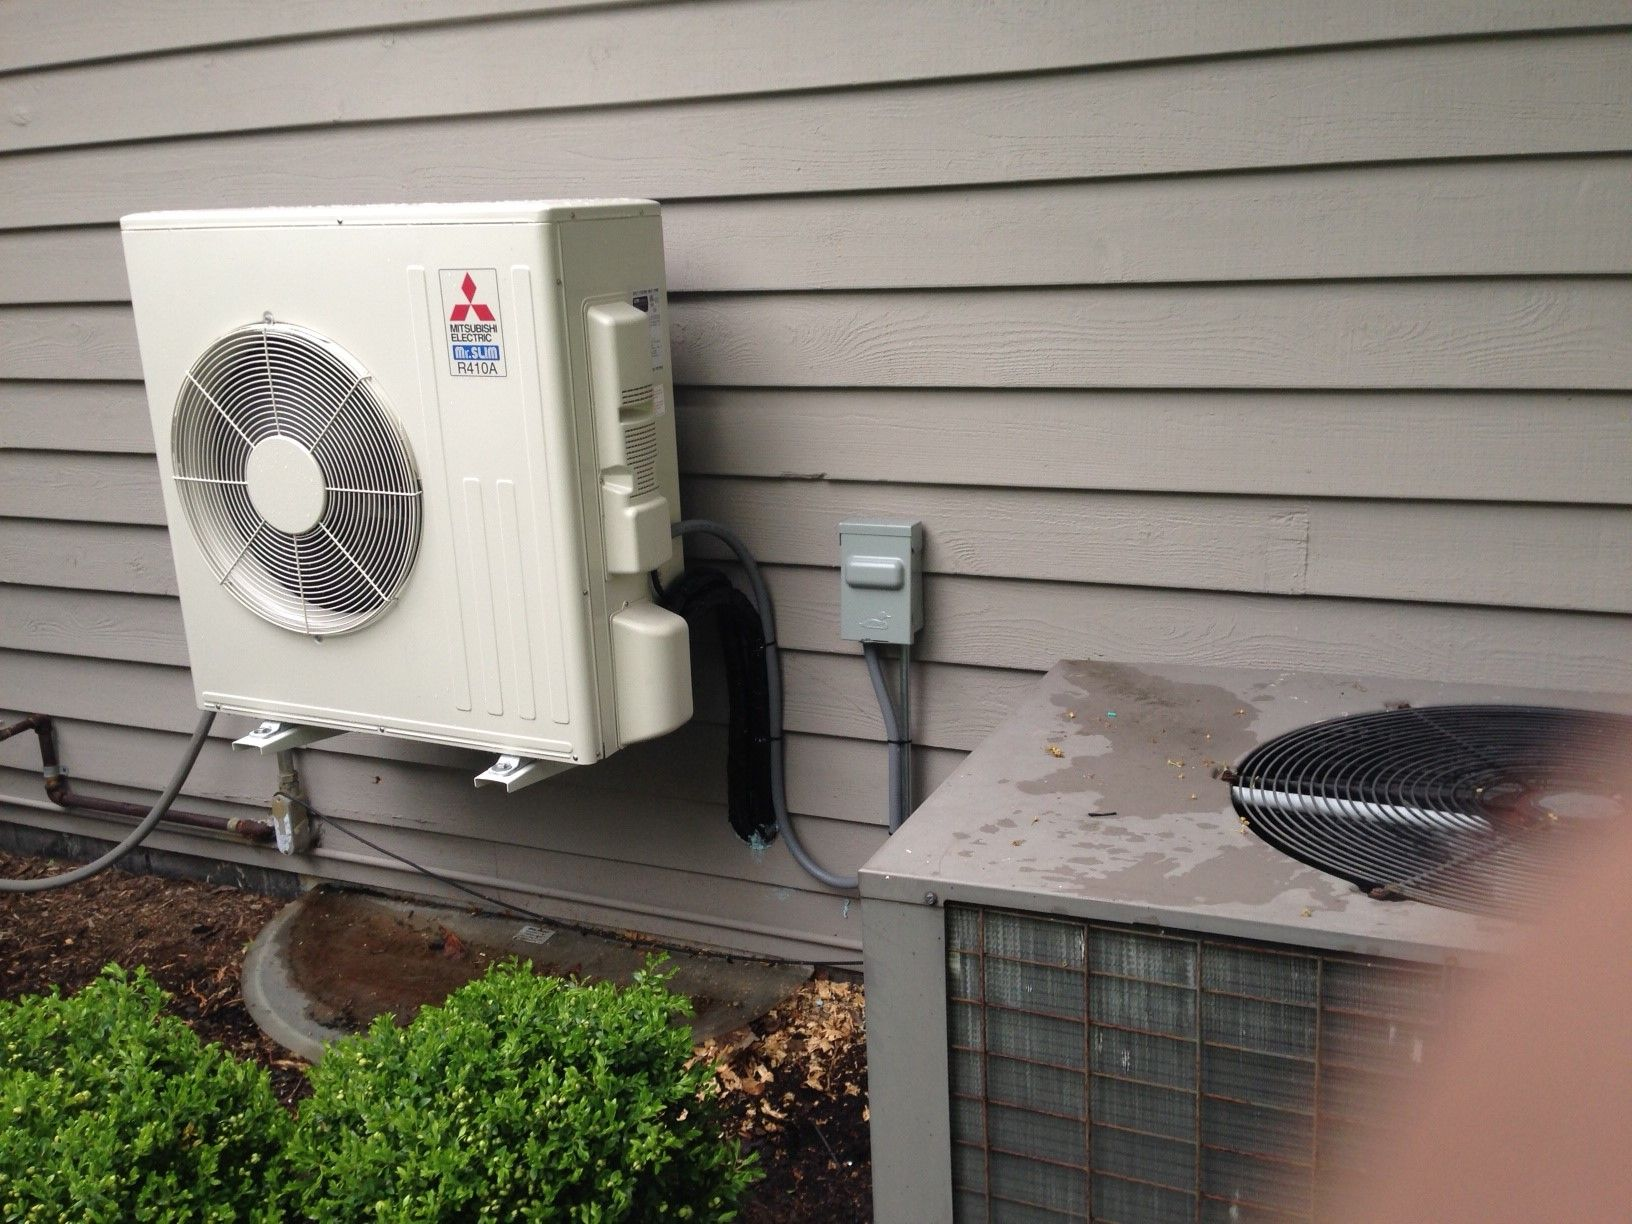 Diy Air Conditioner No Electricity Mitsubishi Ductless Condenser Replacing An Old And